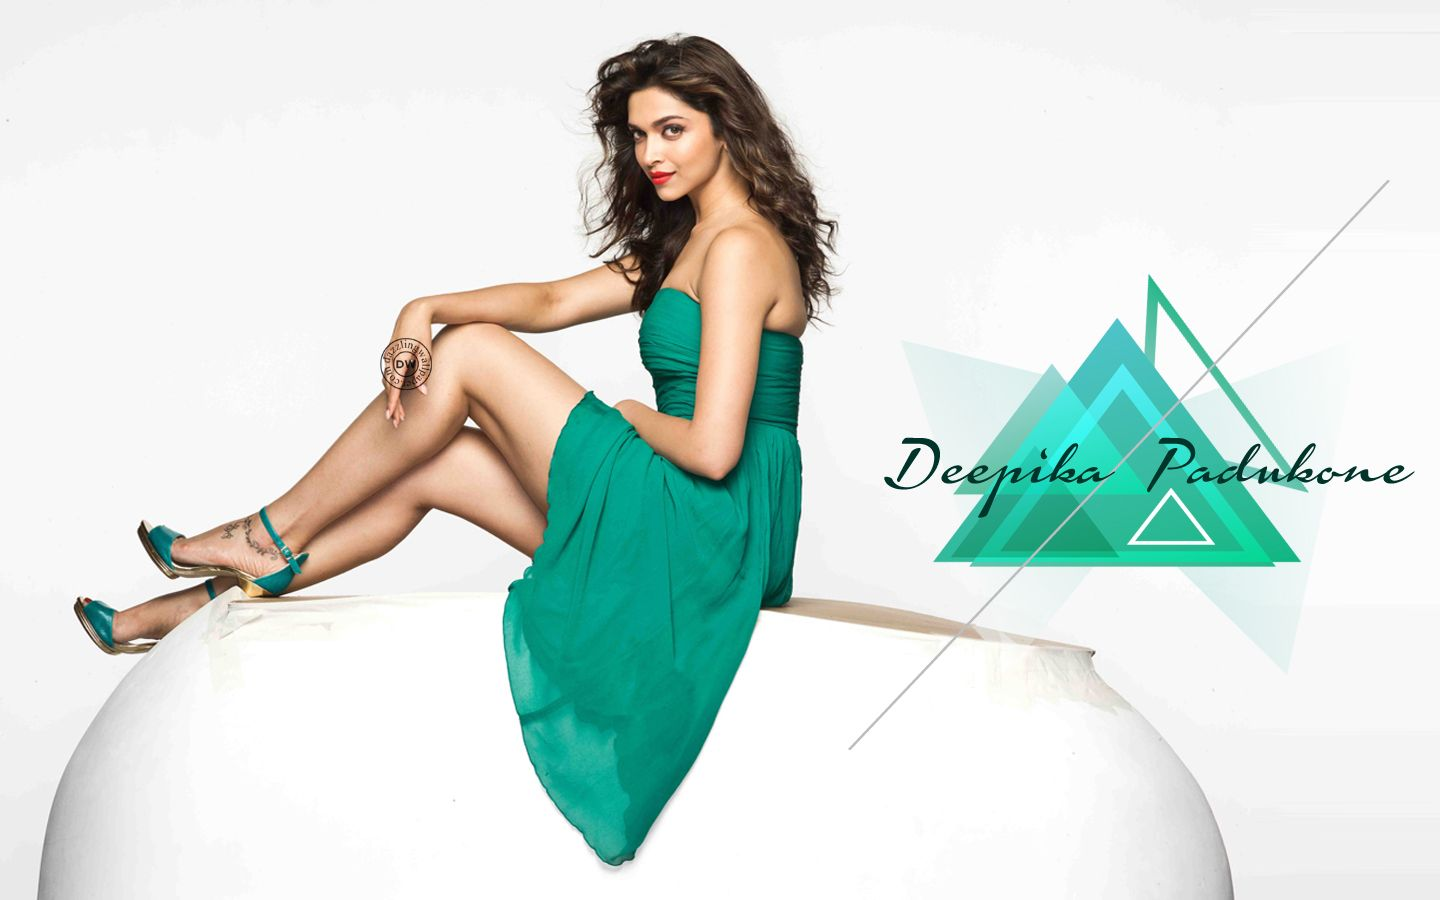 Download Bollywood Actress Hd Wallpapers 1080p Free: Deepika Padukone , HD Wallpapers, Hot, Sexy, Bold